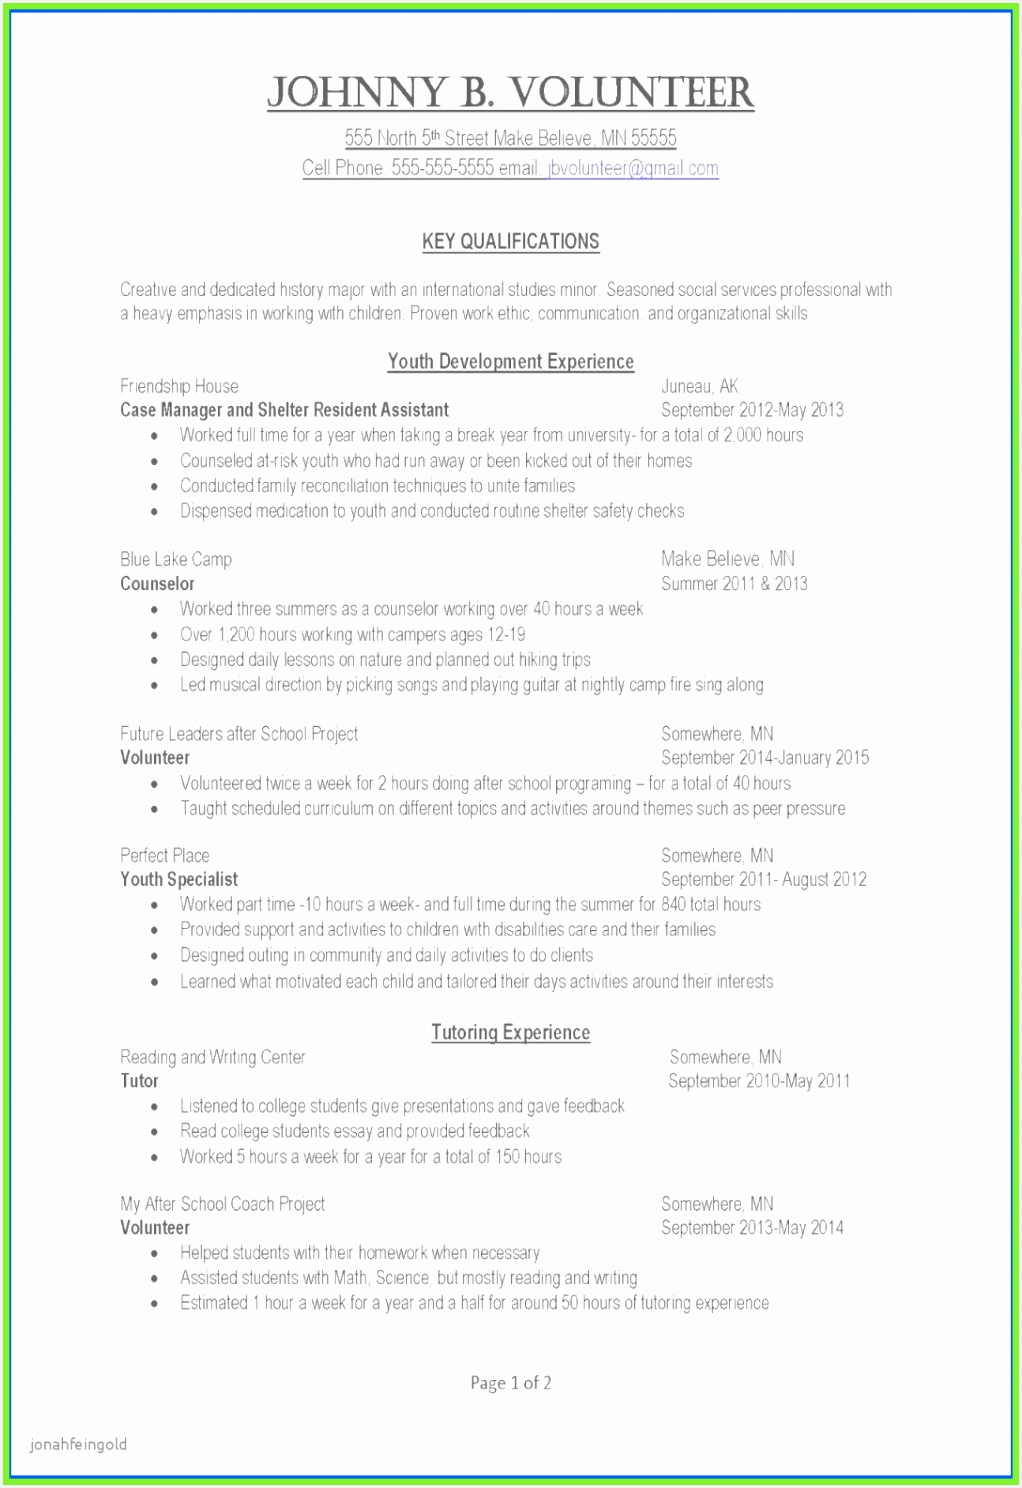 International social Worker Sample Resume Bnede Beautiful 16 Inspirational Student Cover Letter Template Of International social Worker Sample Resume Rcjah Unique Best social Worker Sample Resume Best social Worker Resume